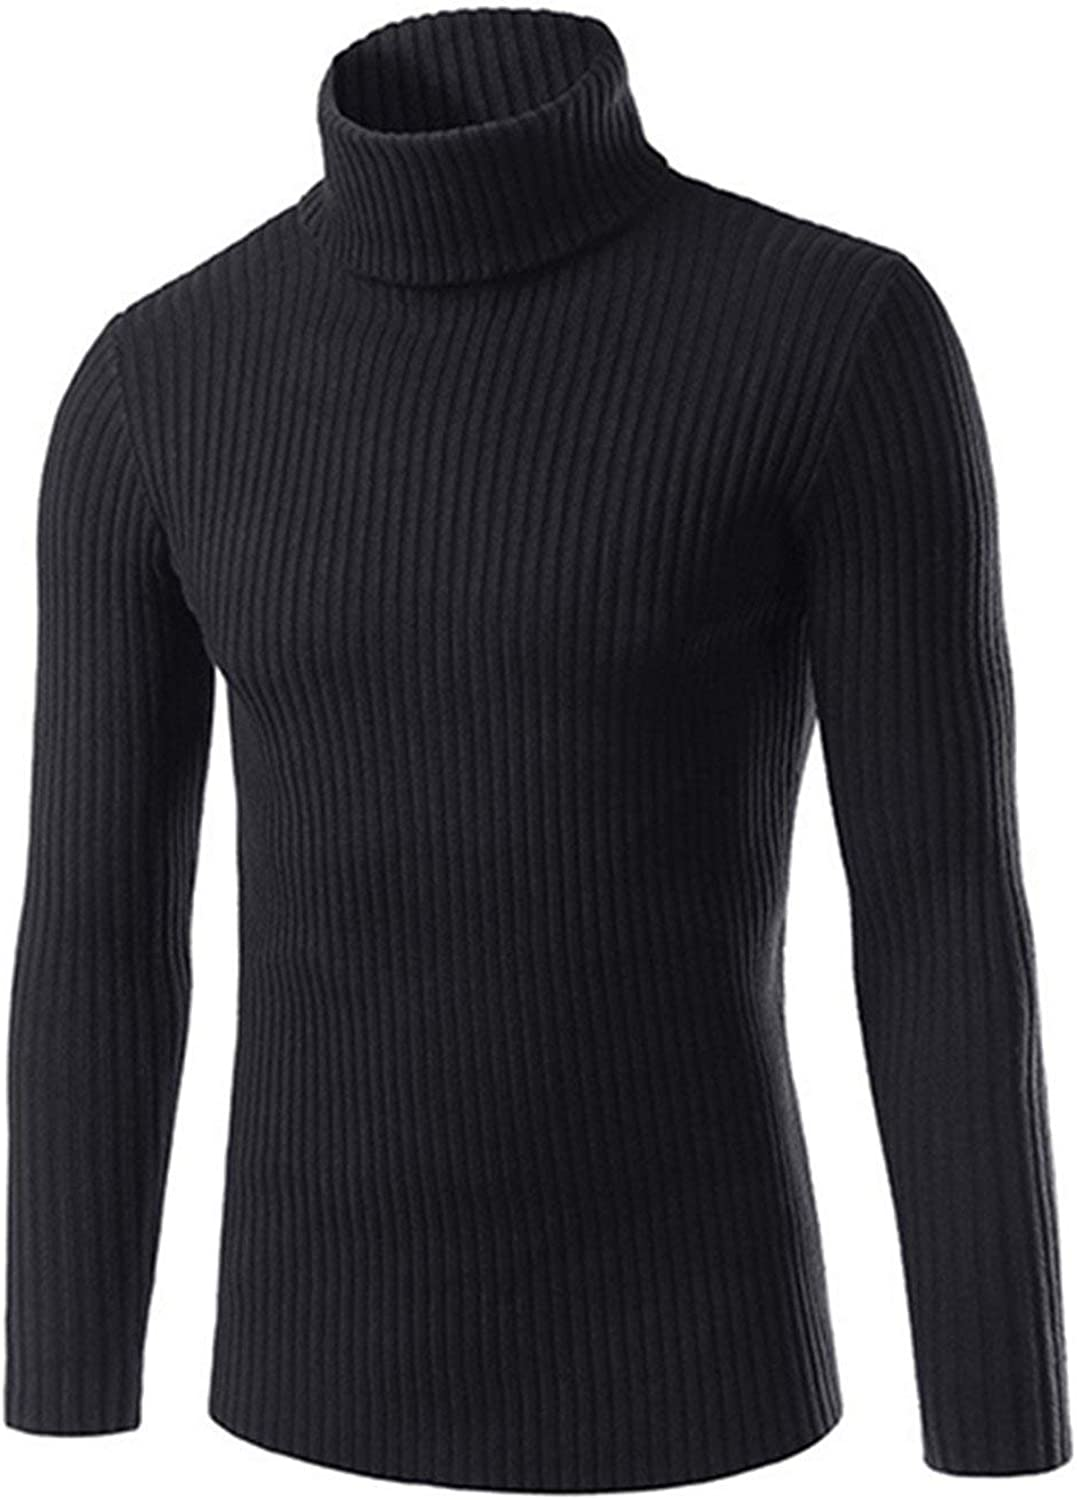 Friendshiy Mens Sweaters and Pullovers Men Turtle Neck Sweater Male Outerwear Jumper Knitted Turtleneck Sweaters M-XXL,Medium,Black